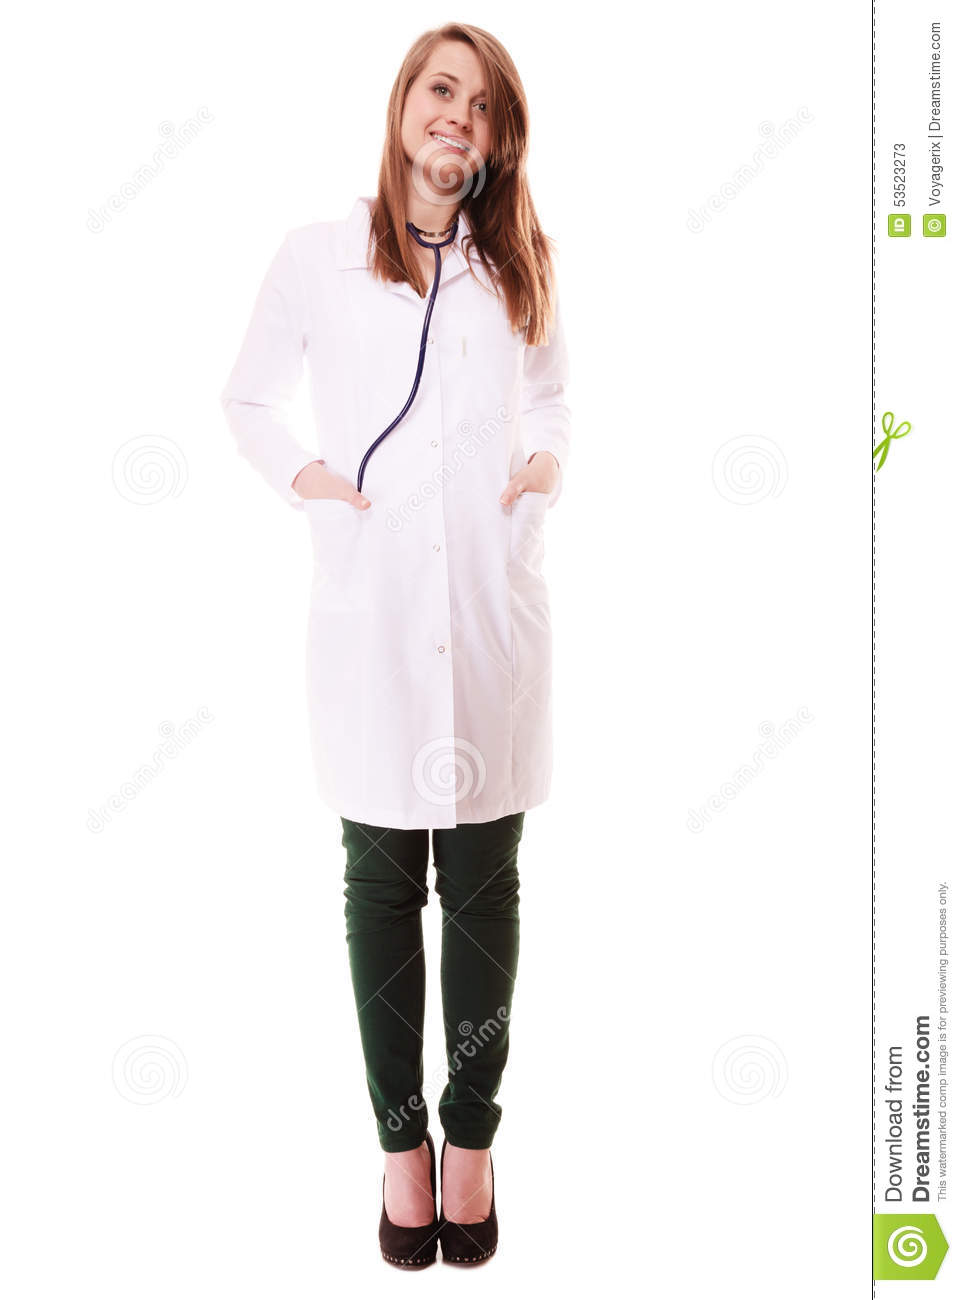 Medical. Full Length Of Woman Doctor In Lab Coat Stock Photo ...